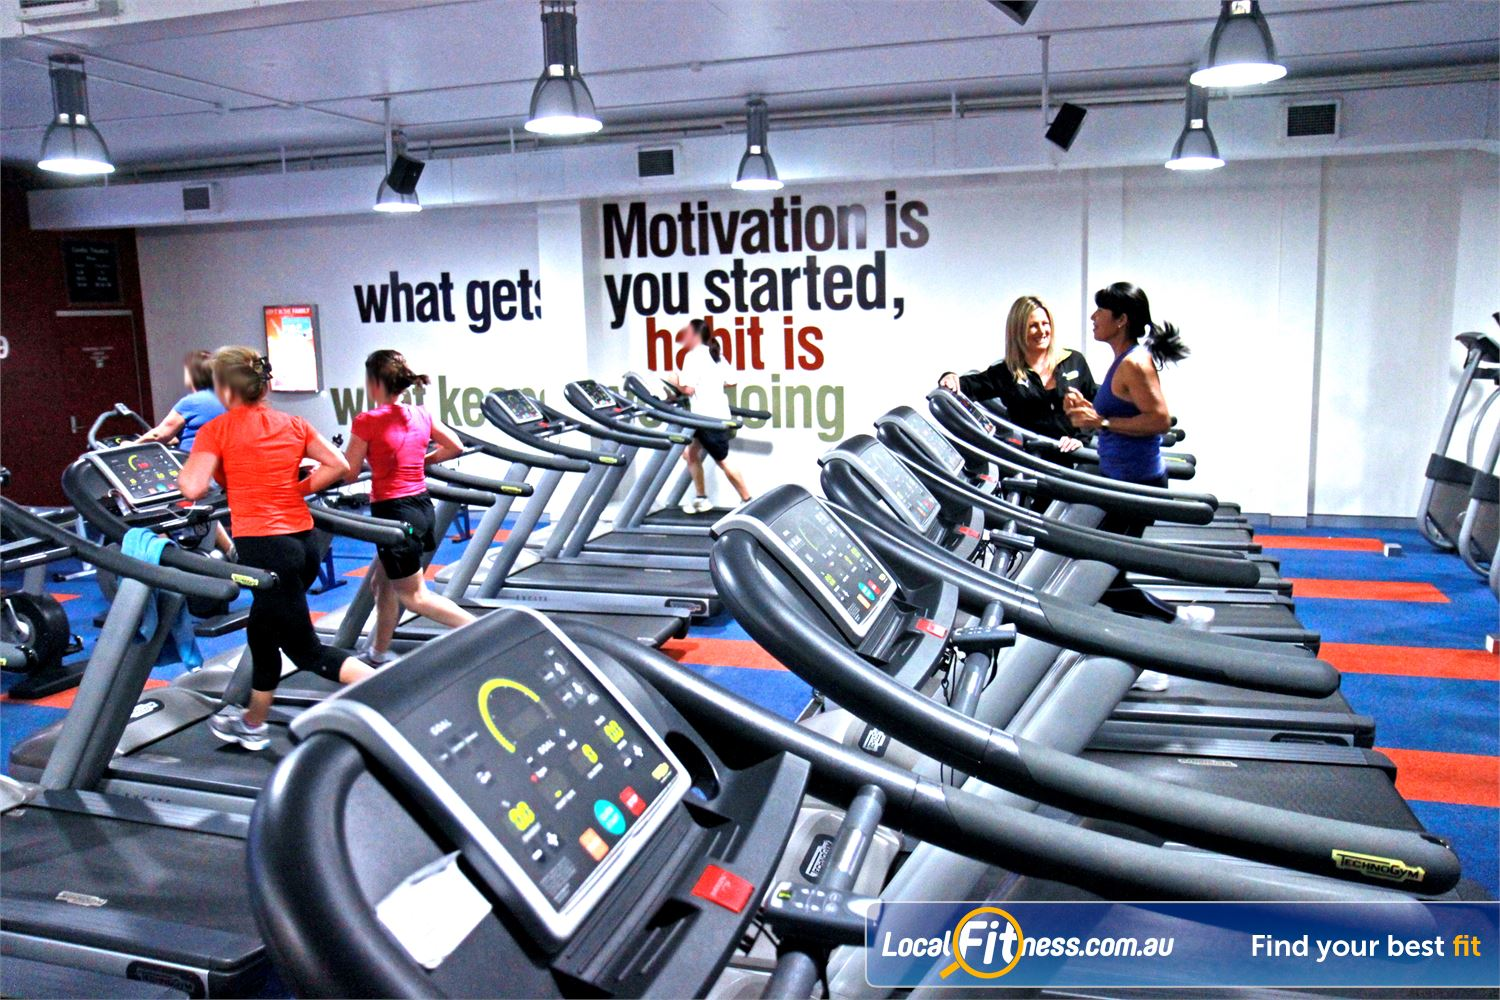 Goodlife Health Clubs Innaloo Our signature cardio theatre setup at Goodlife Innaloo gym.